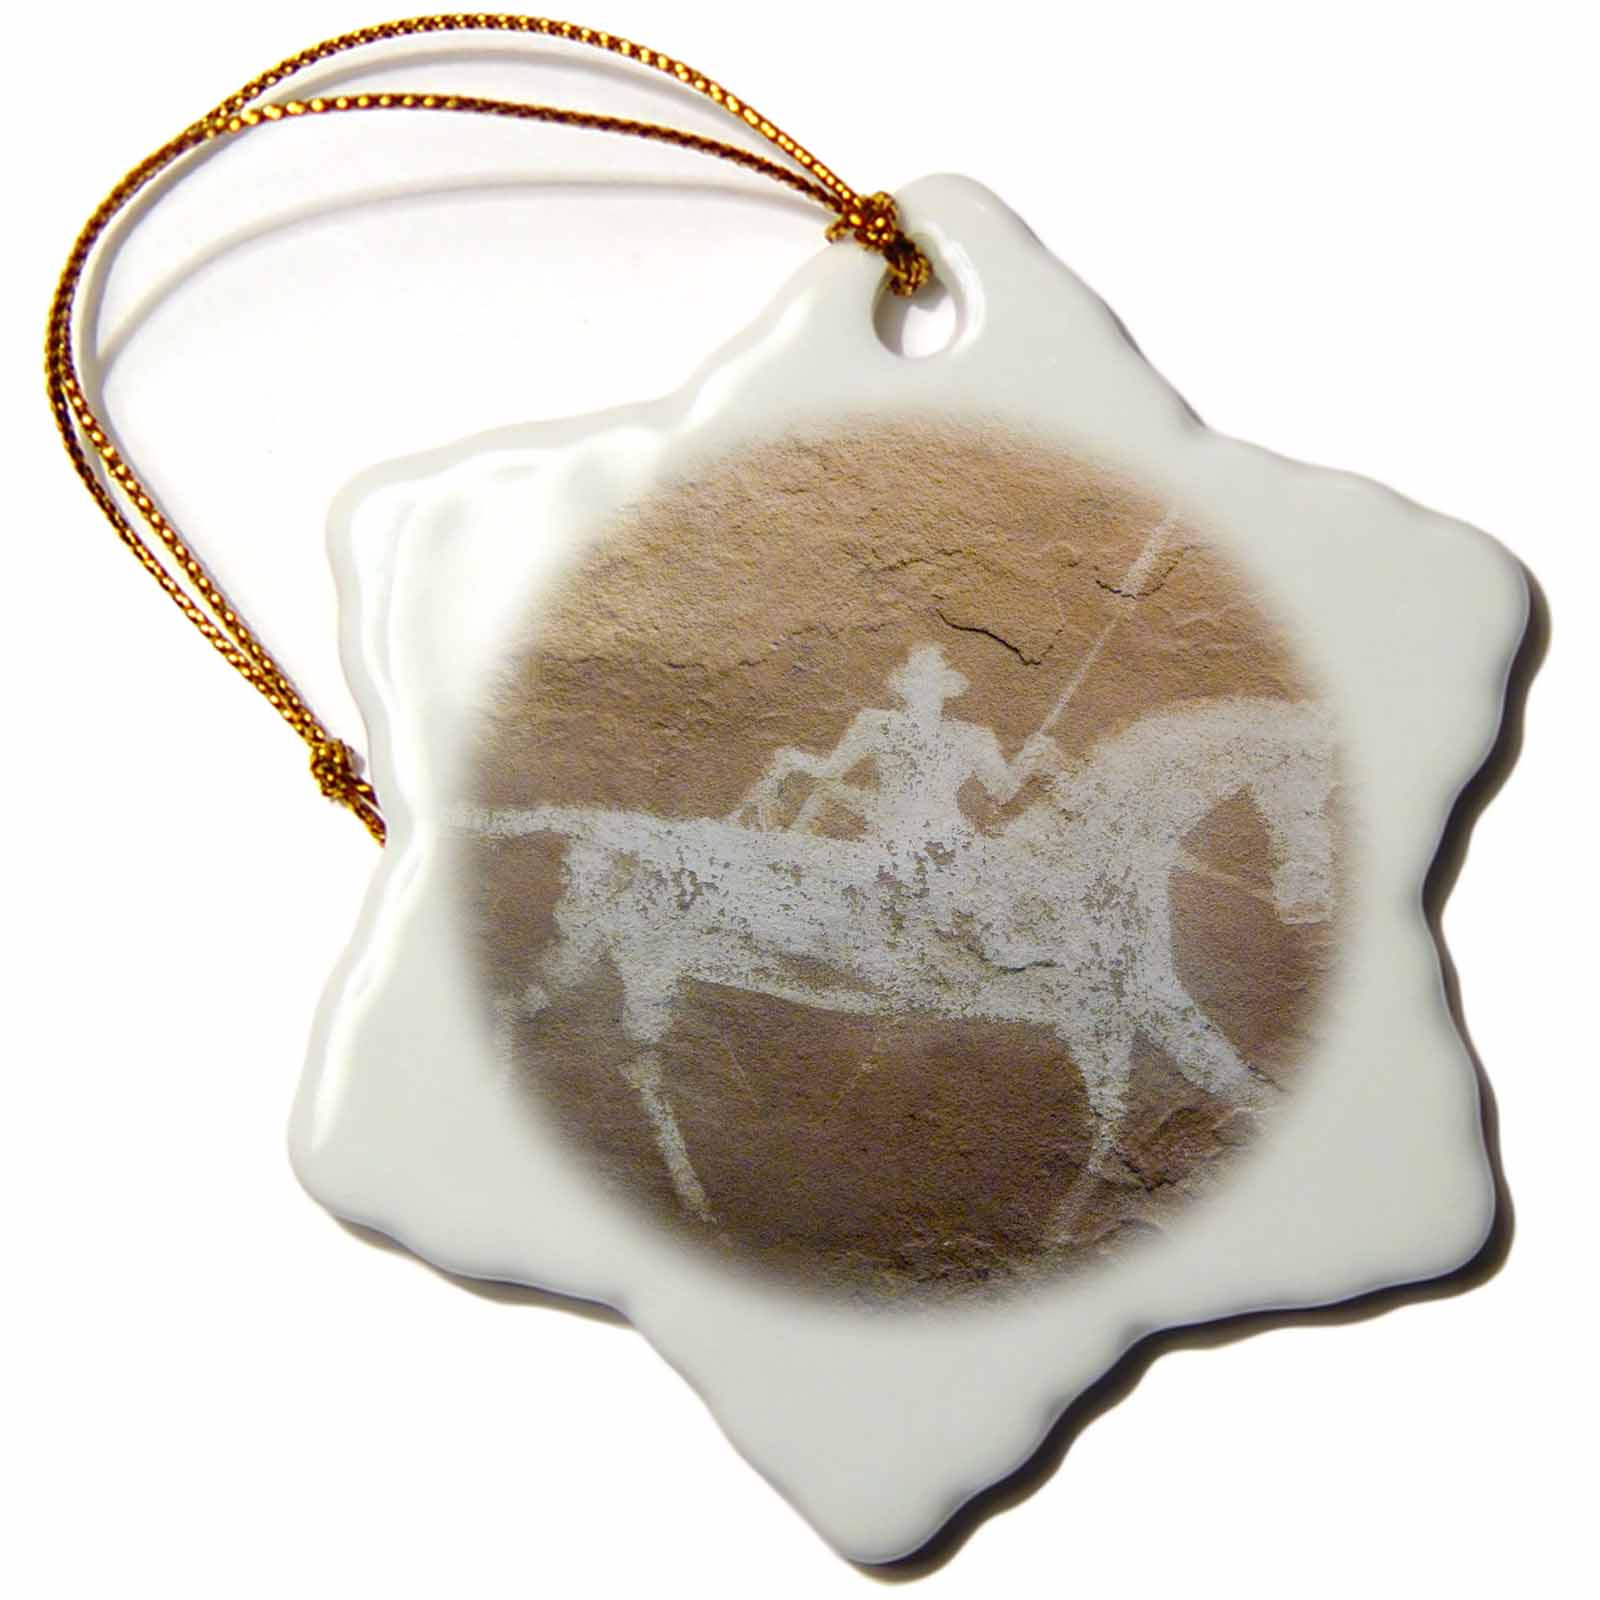 3dRose Pictograph, Canyon deChelly NP, Native American - US32 AWY0013 - Angel Wynn, Snowflake Ornament, Porcelain, 3-inch